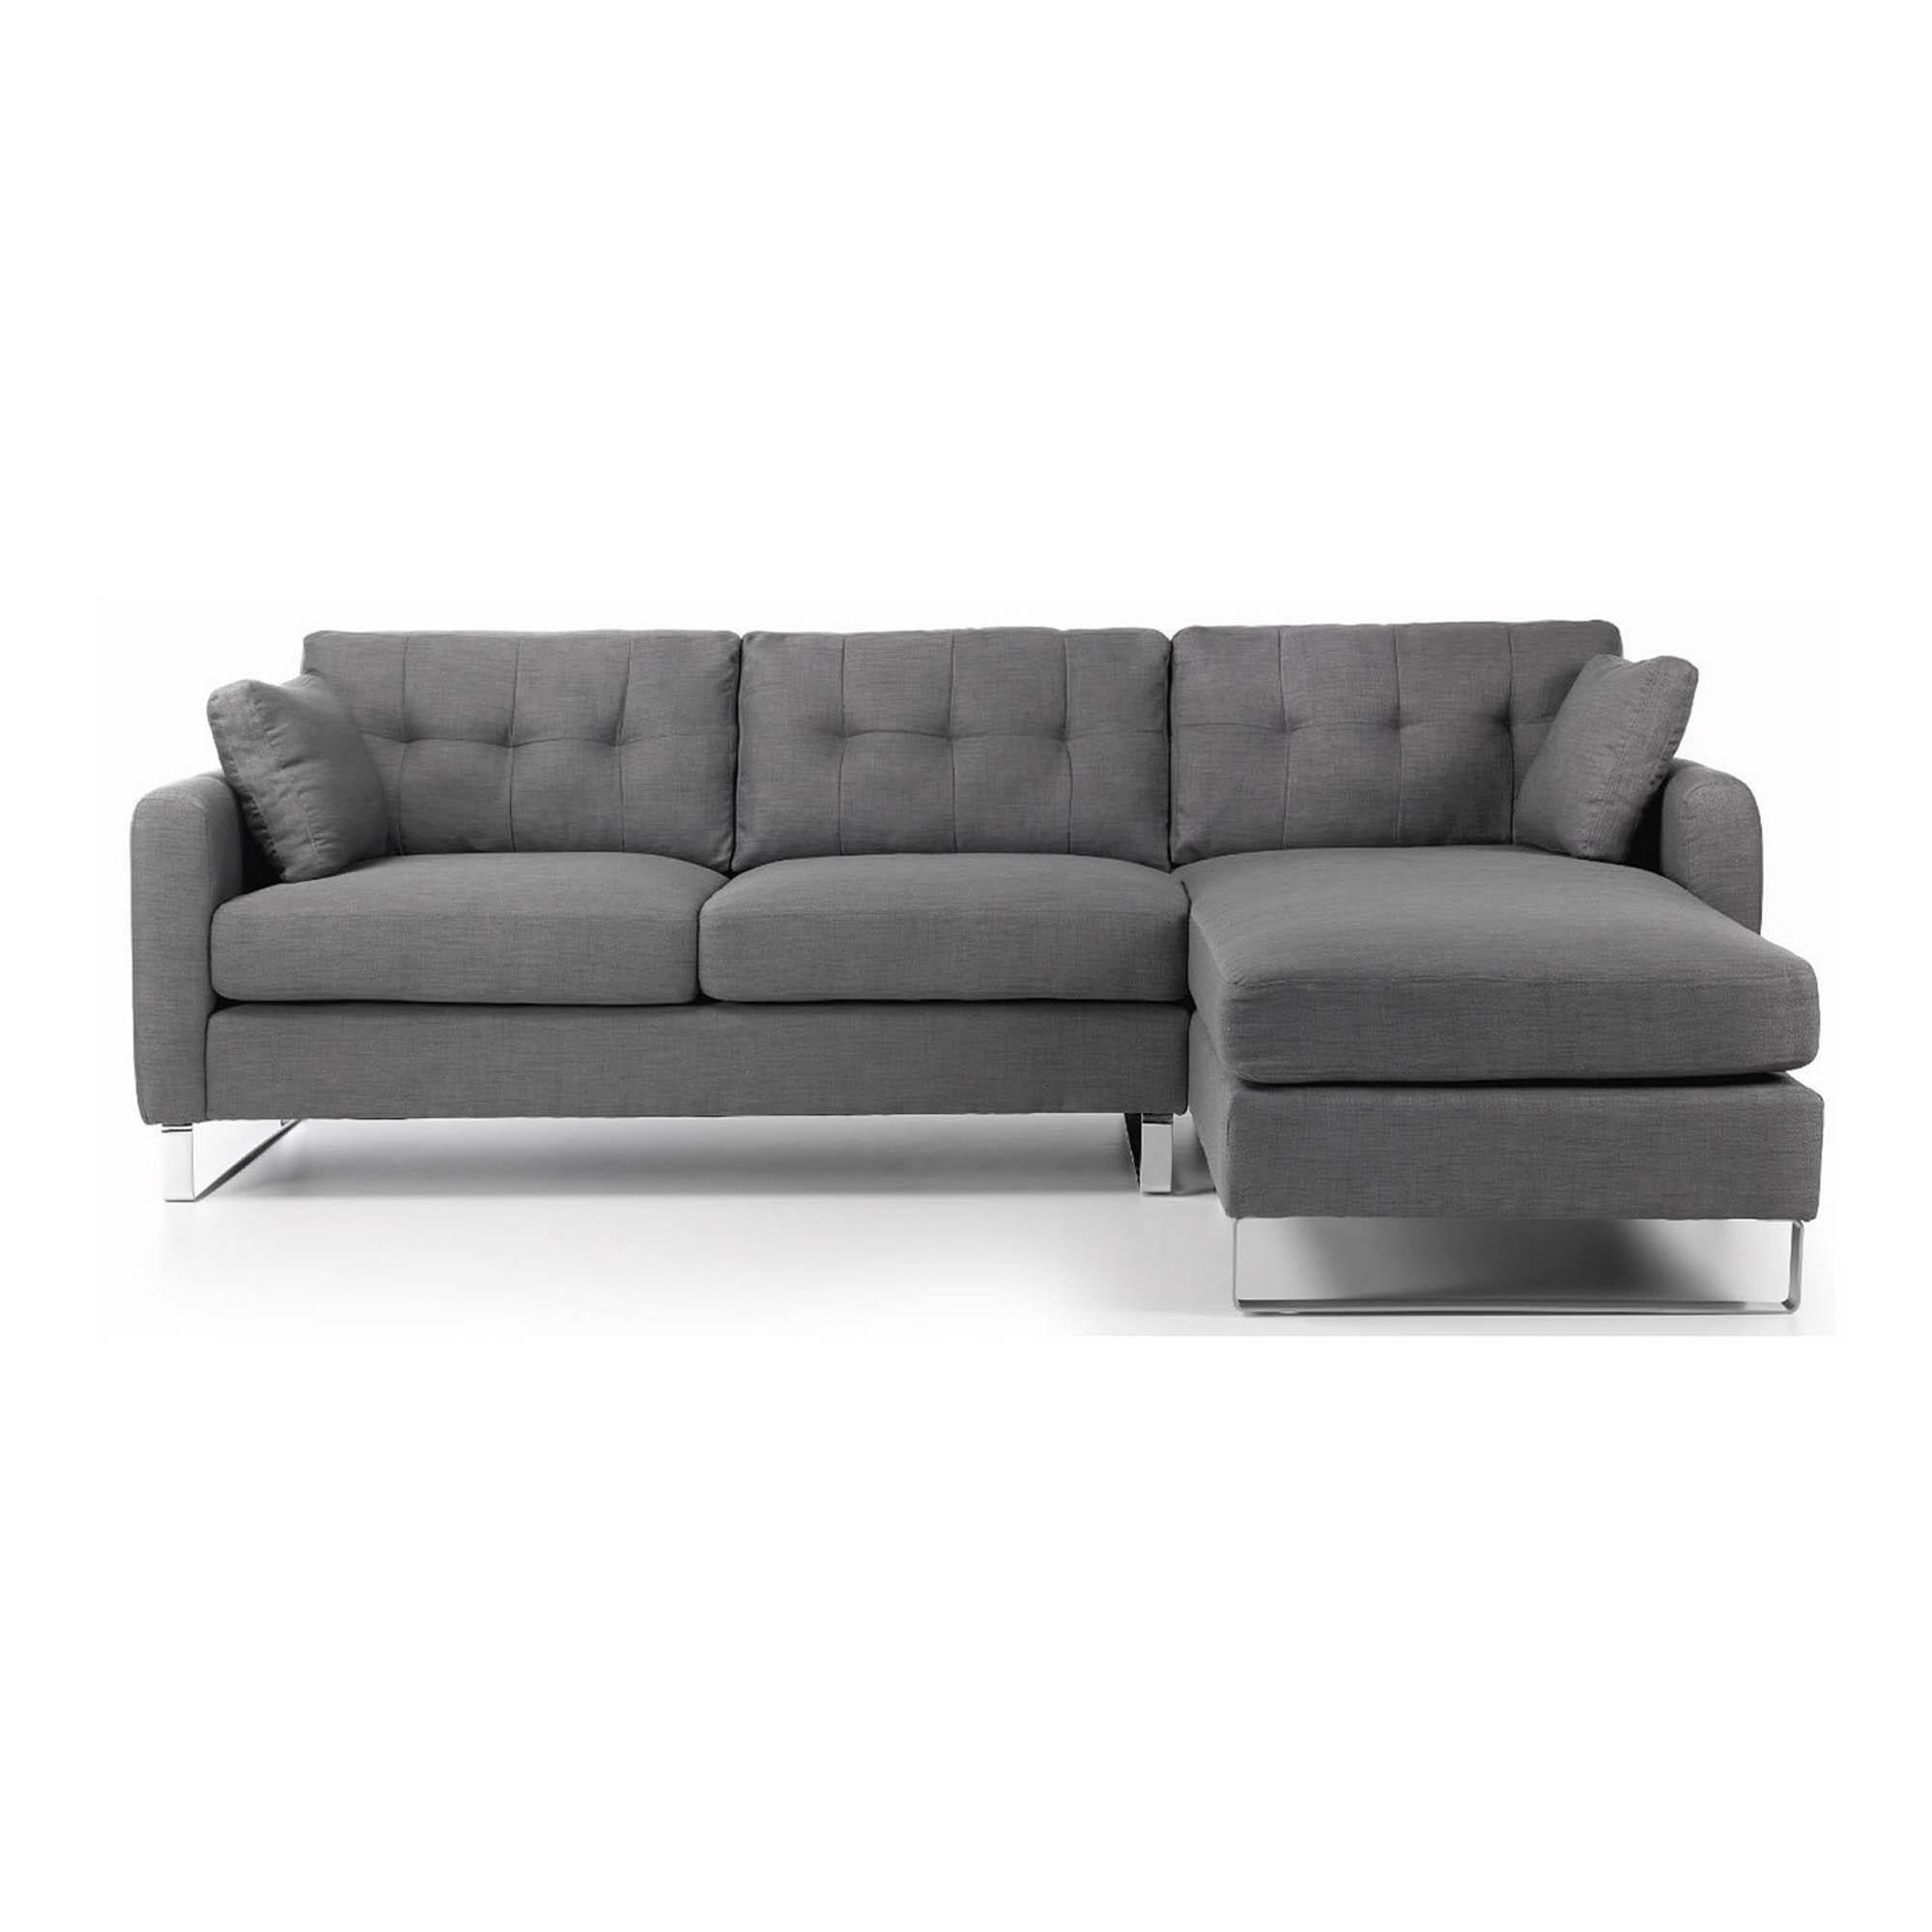 Corner sofa bed is a corner sofa on the right.  loz_exclusively_online UZREXIL